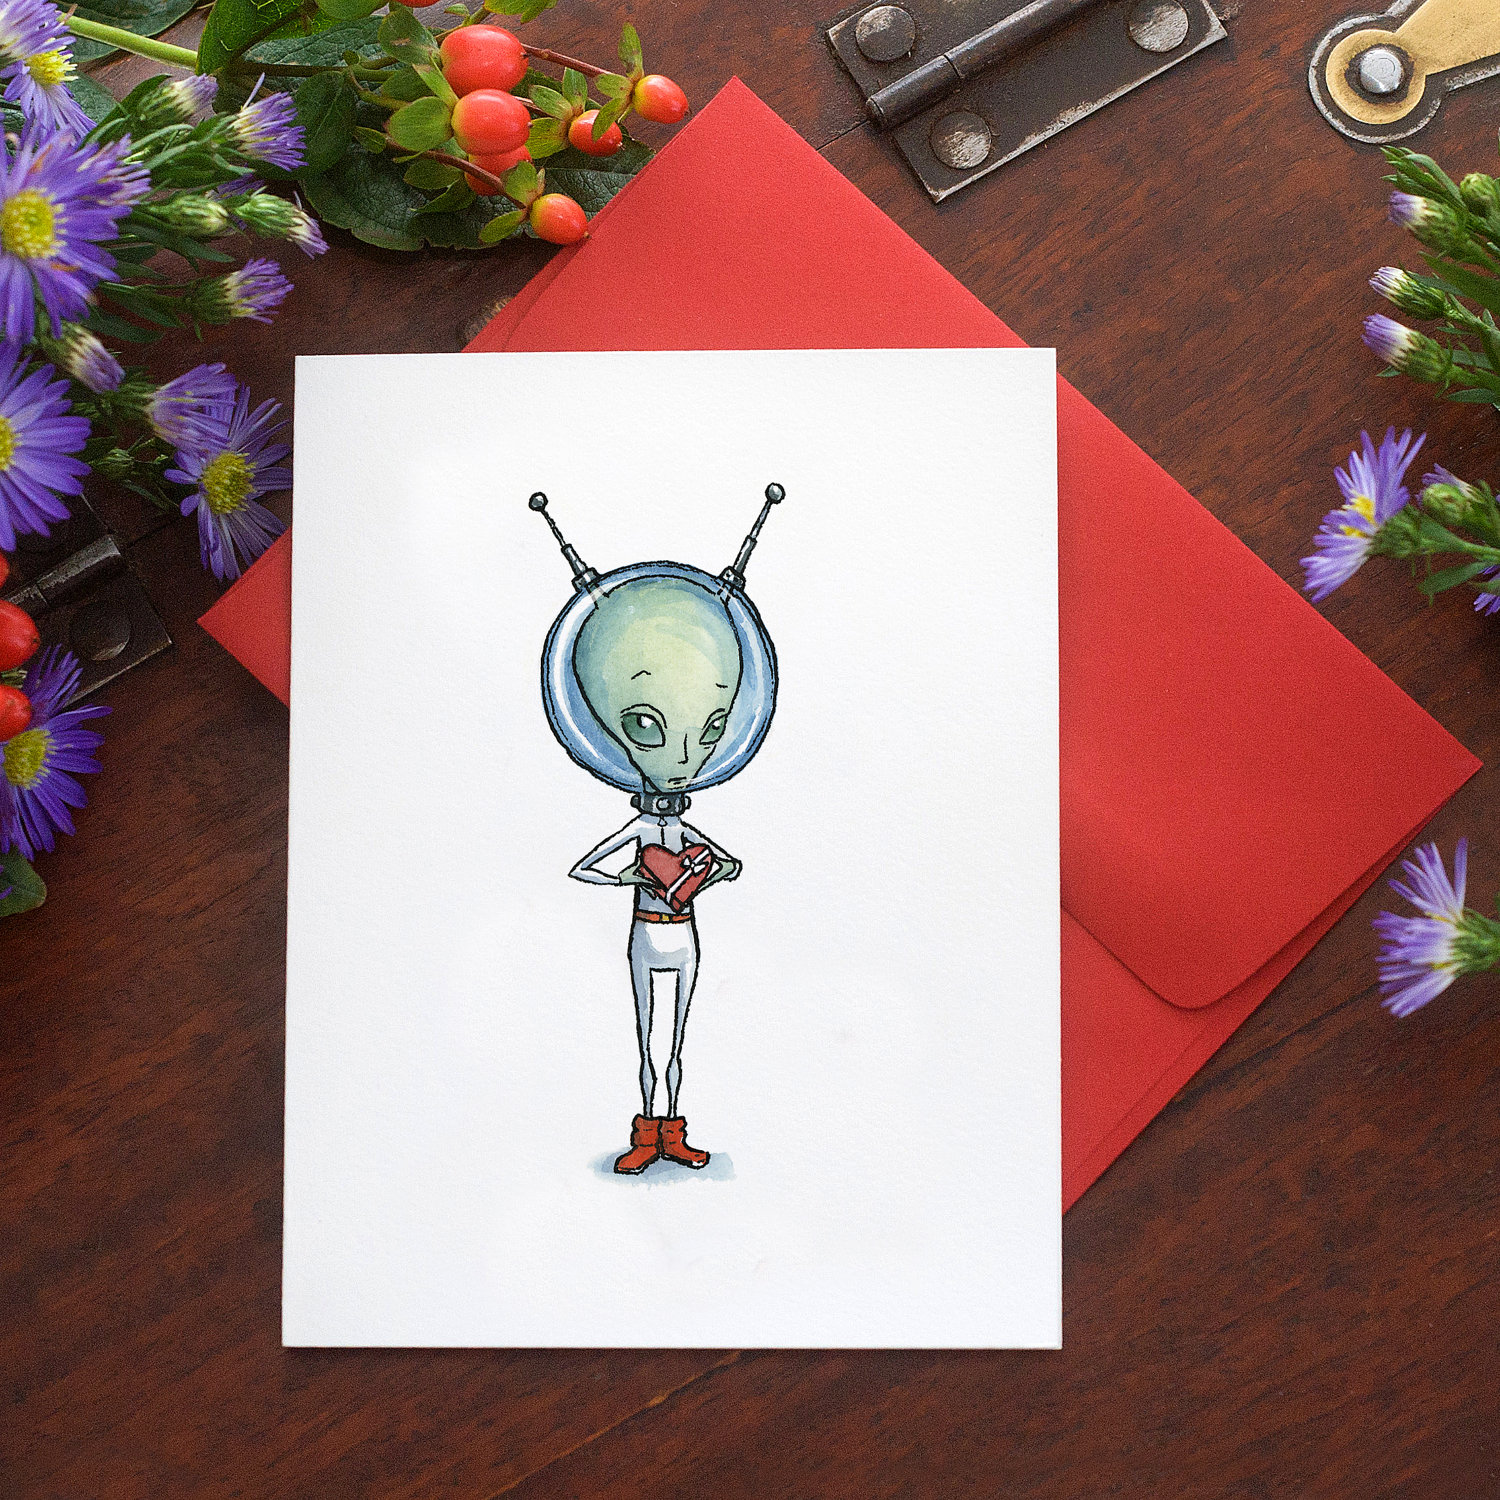 Ah, nothing is sweeter than young alien love ($4).